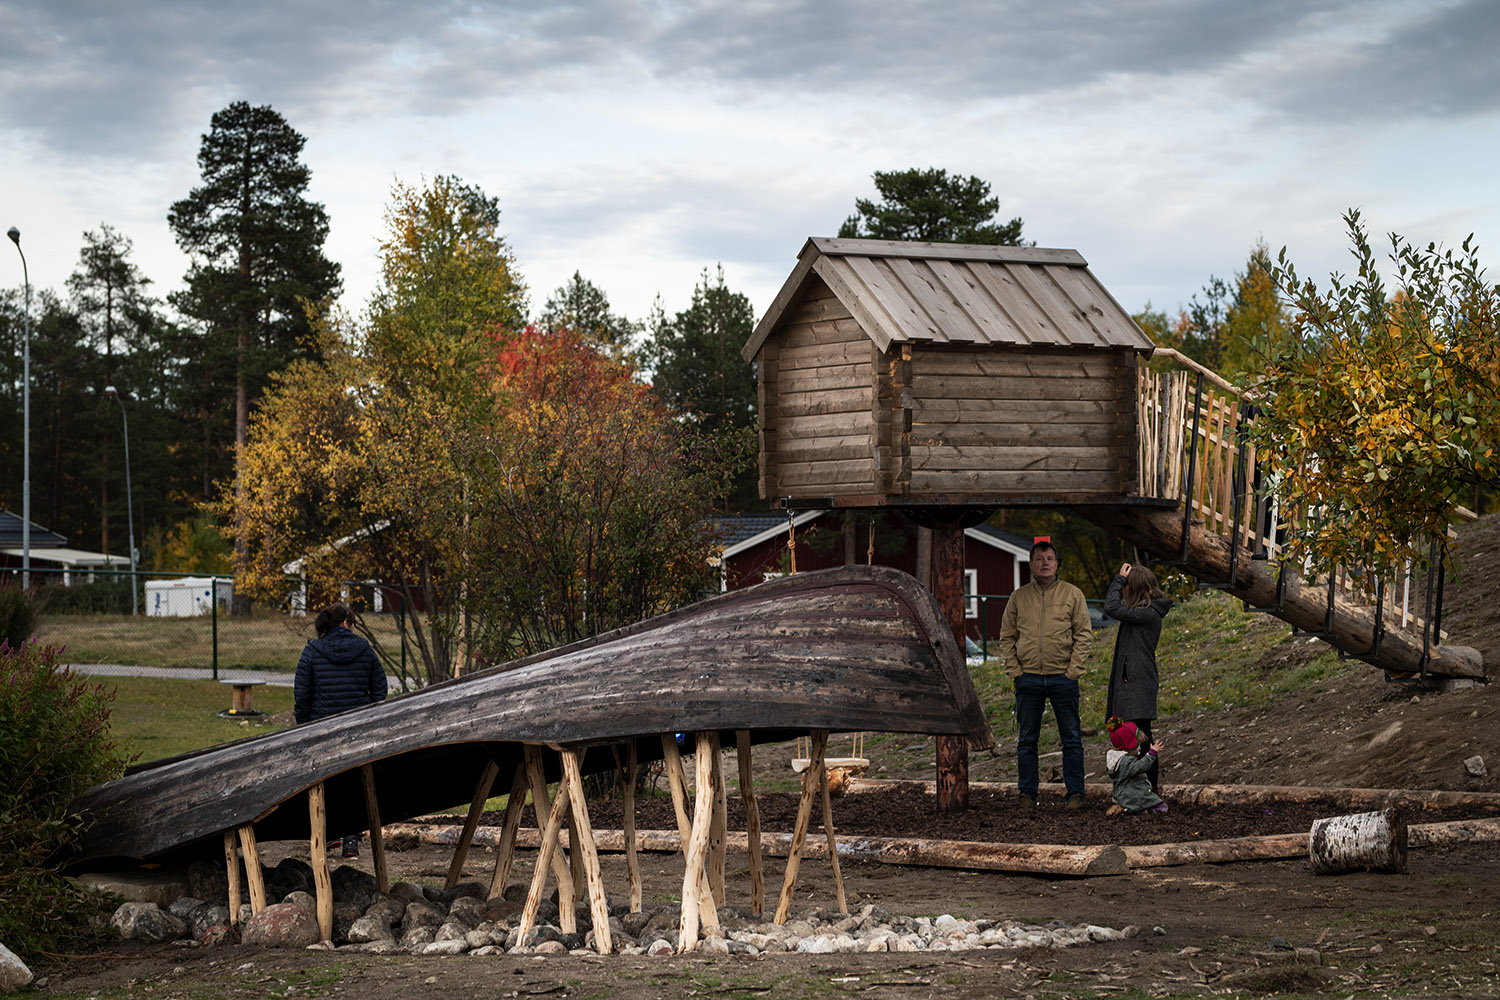 A yard at a kindergarten with a wooden boat piled on poles and a small shed also made by wood.